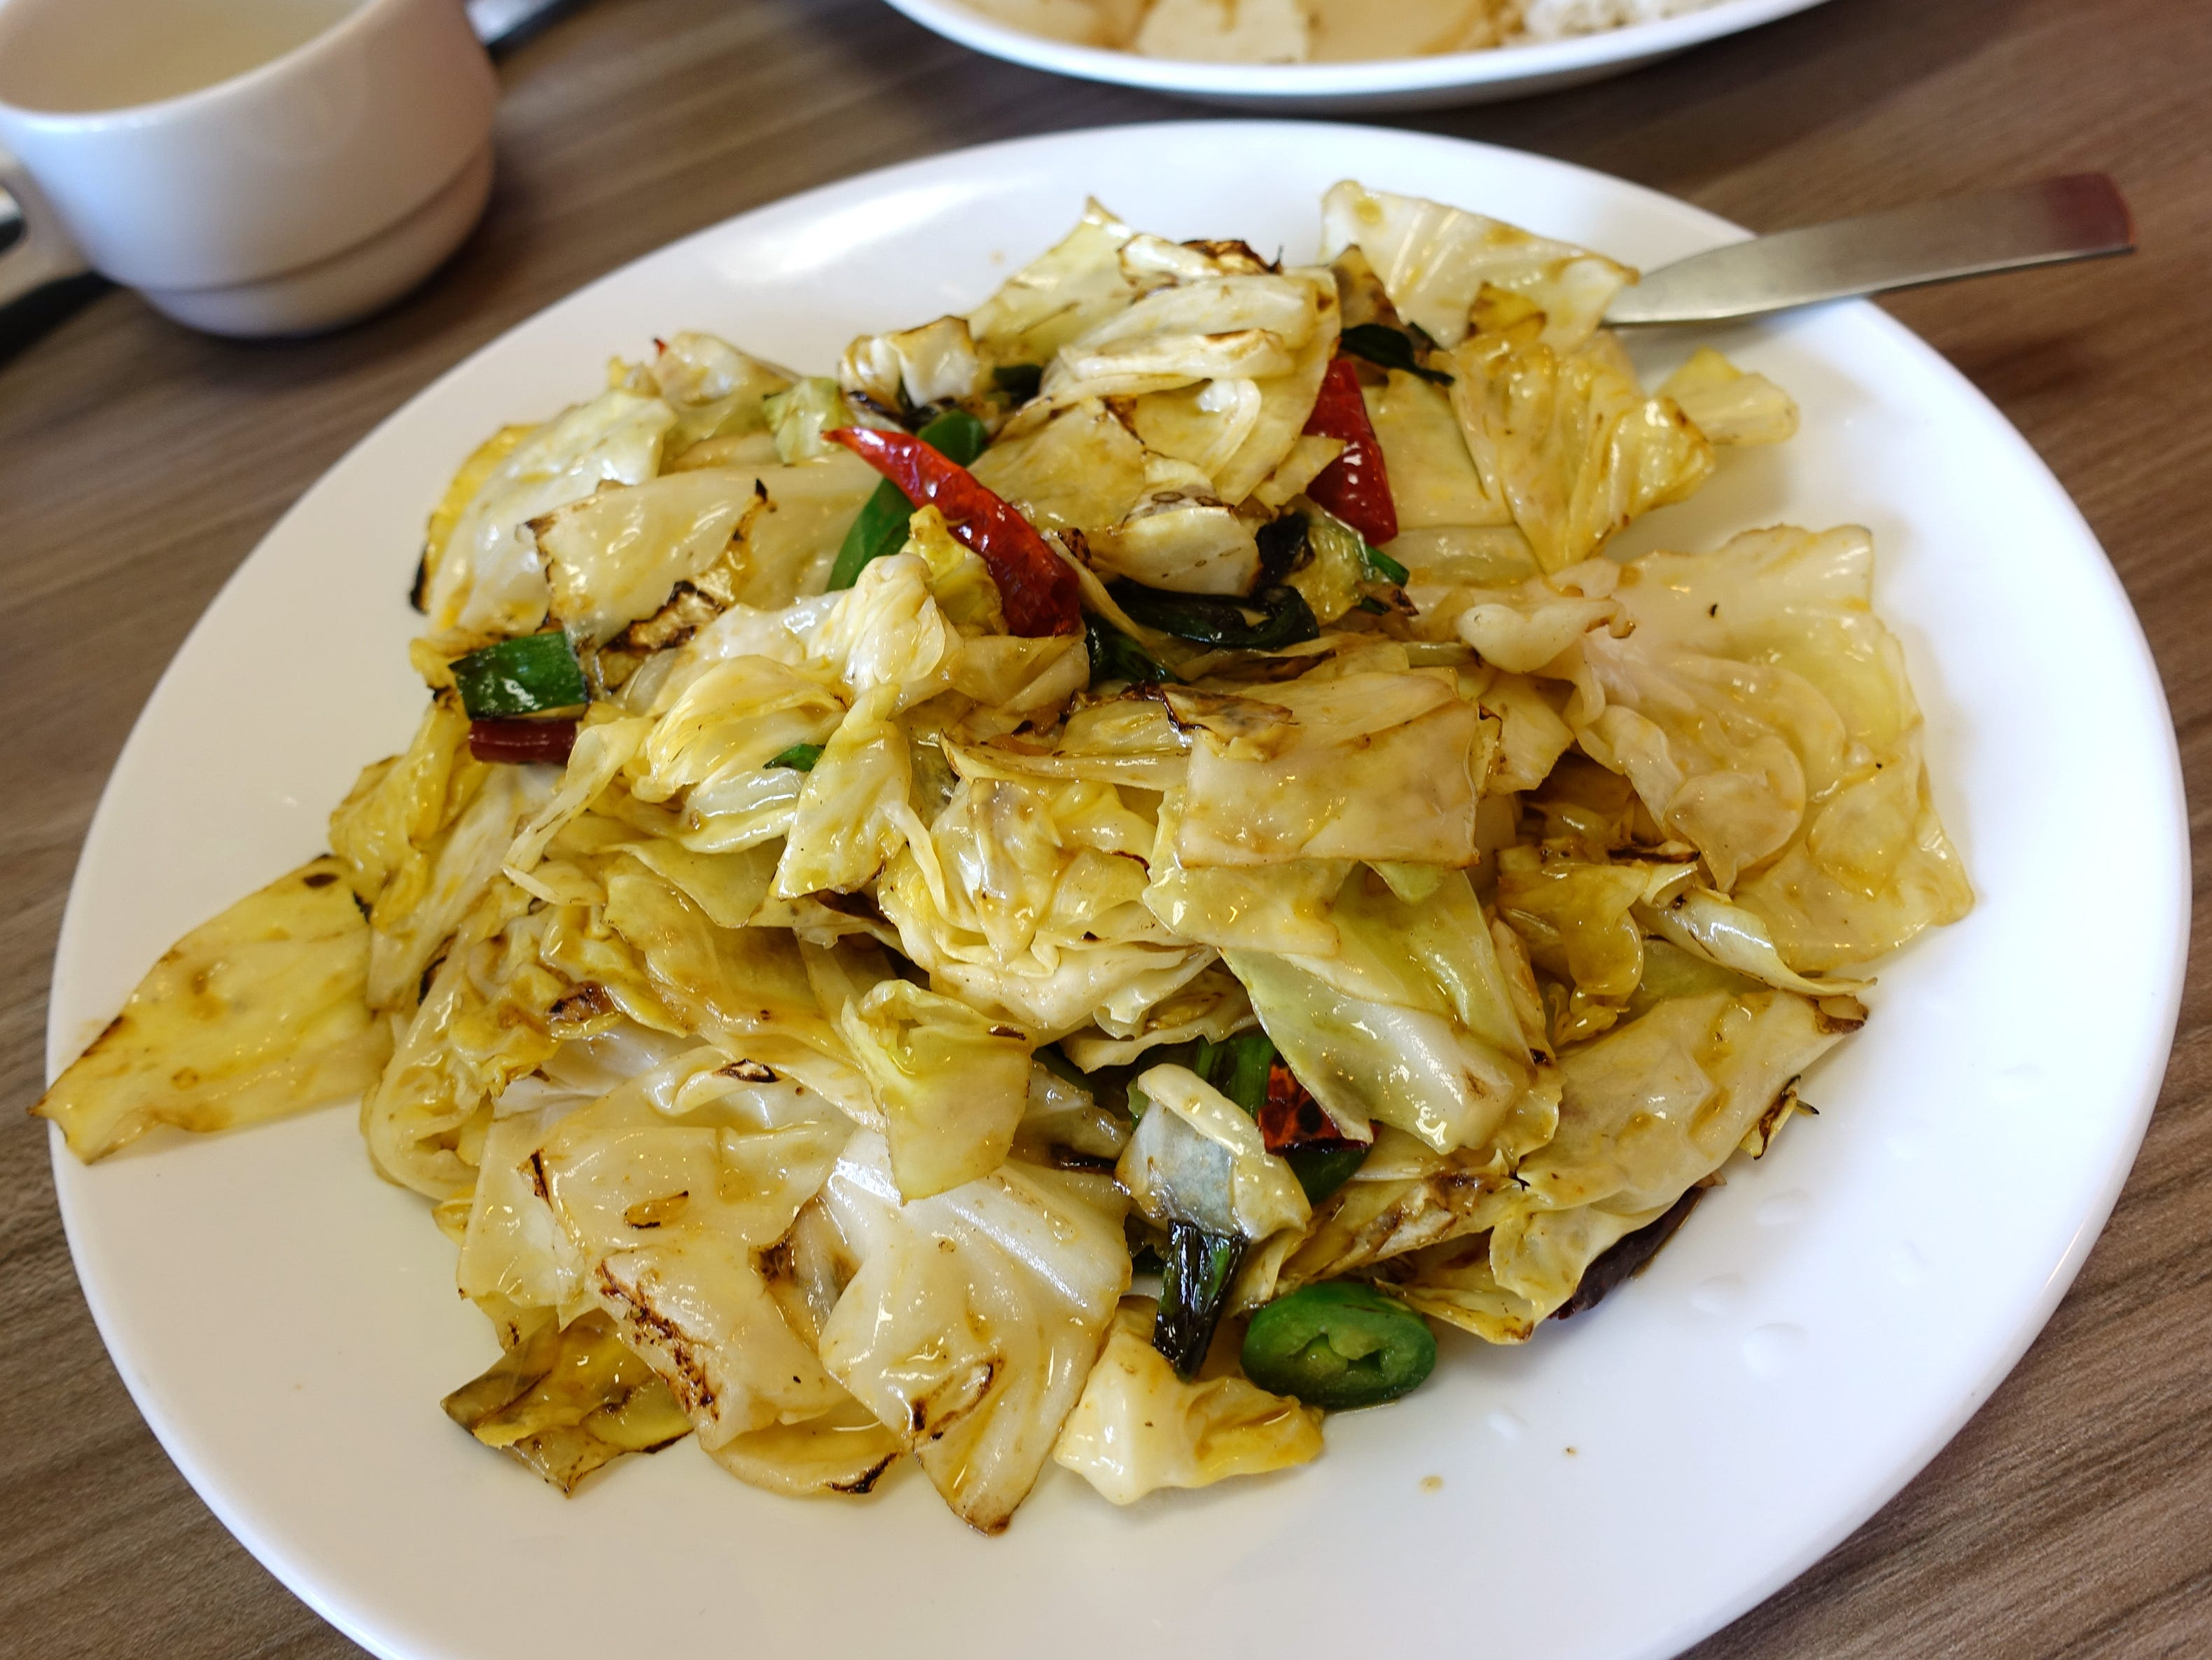 Cabbage with chile, garlic and ginger at Xian Fusing Cafe in Mesa.